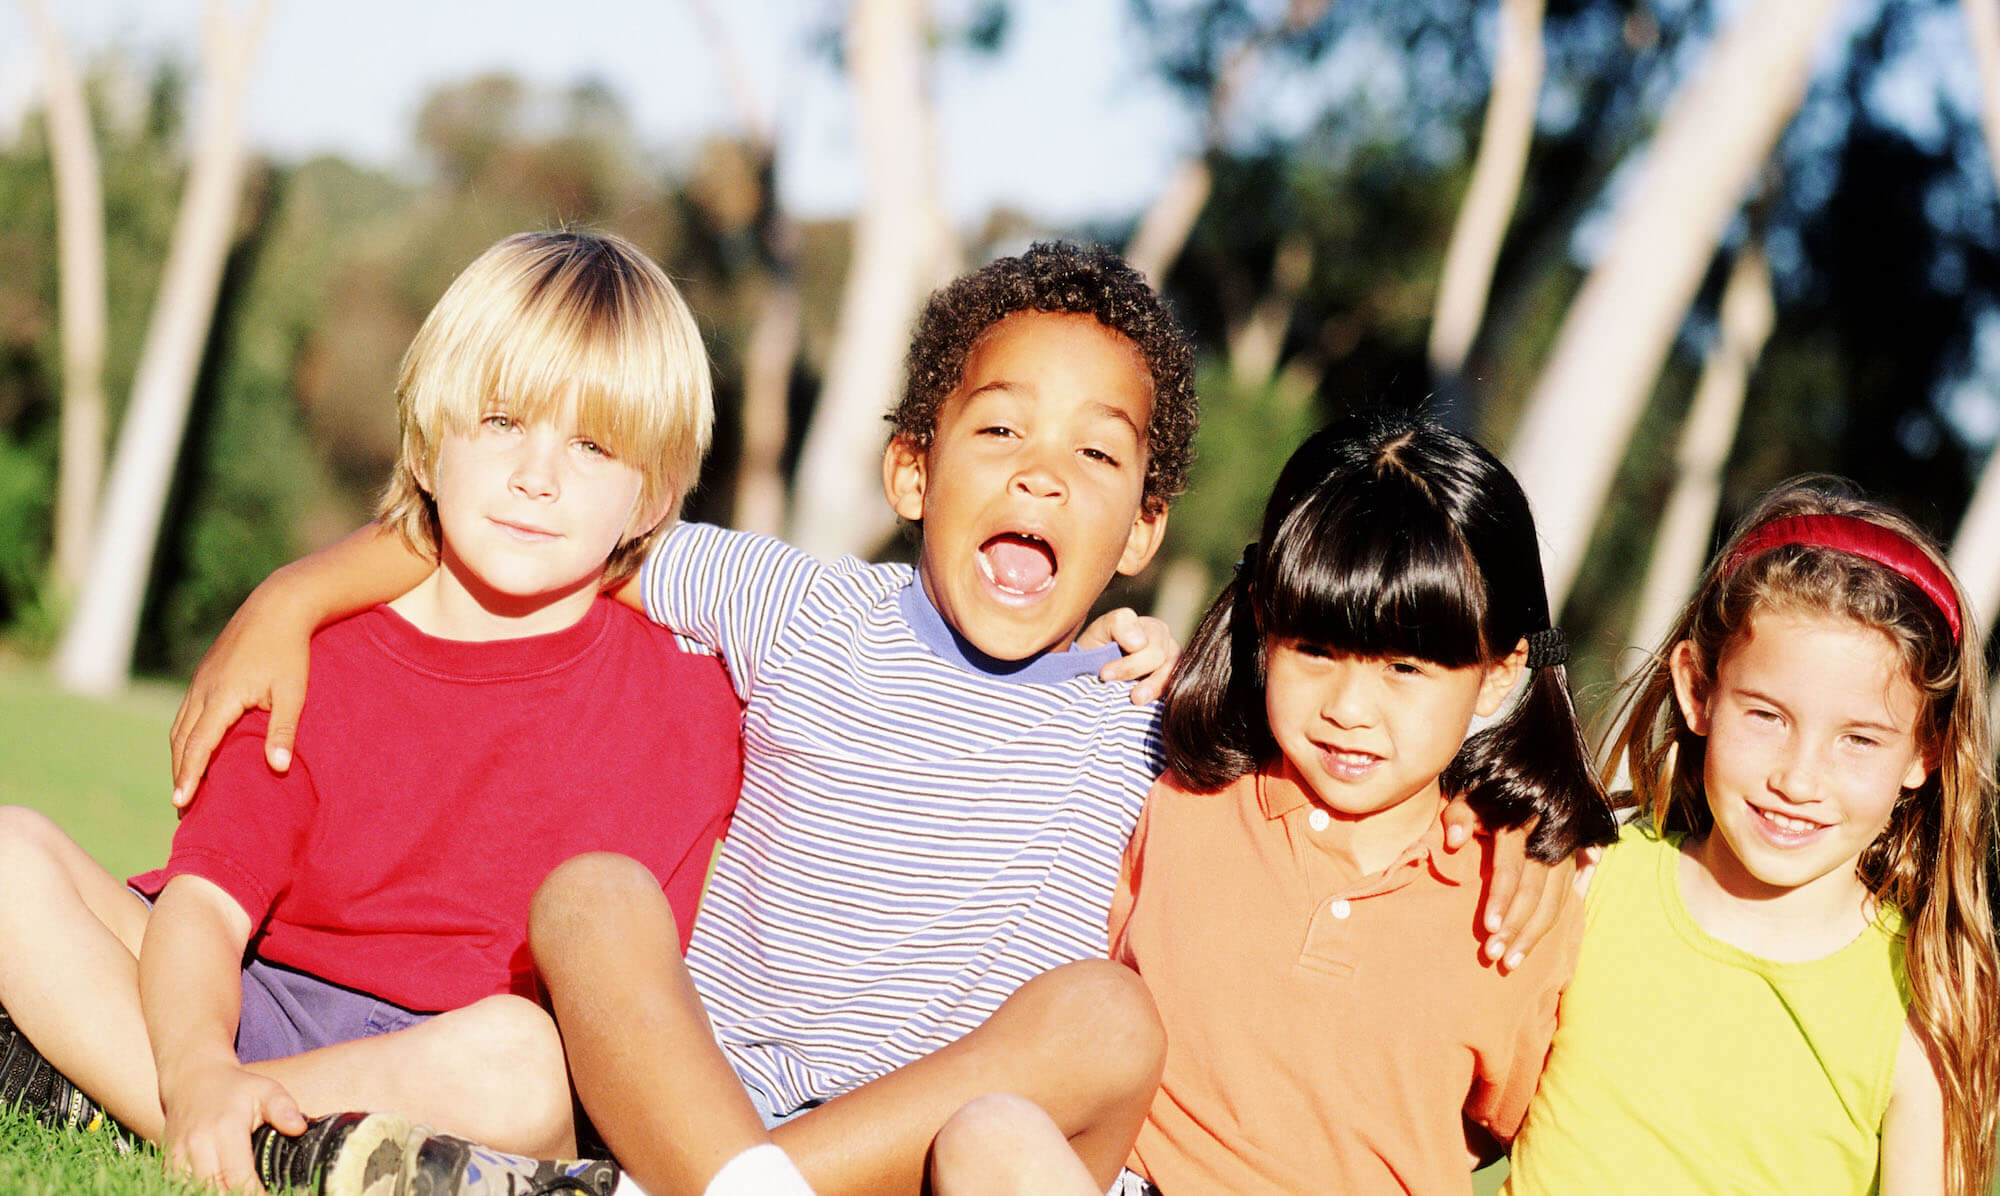 four children of different races playing together